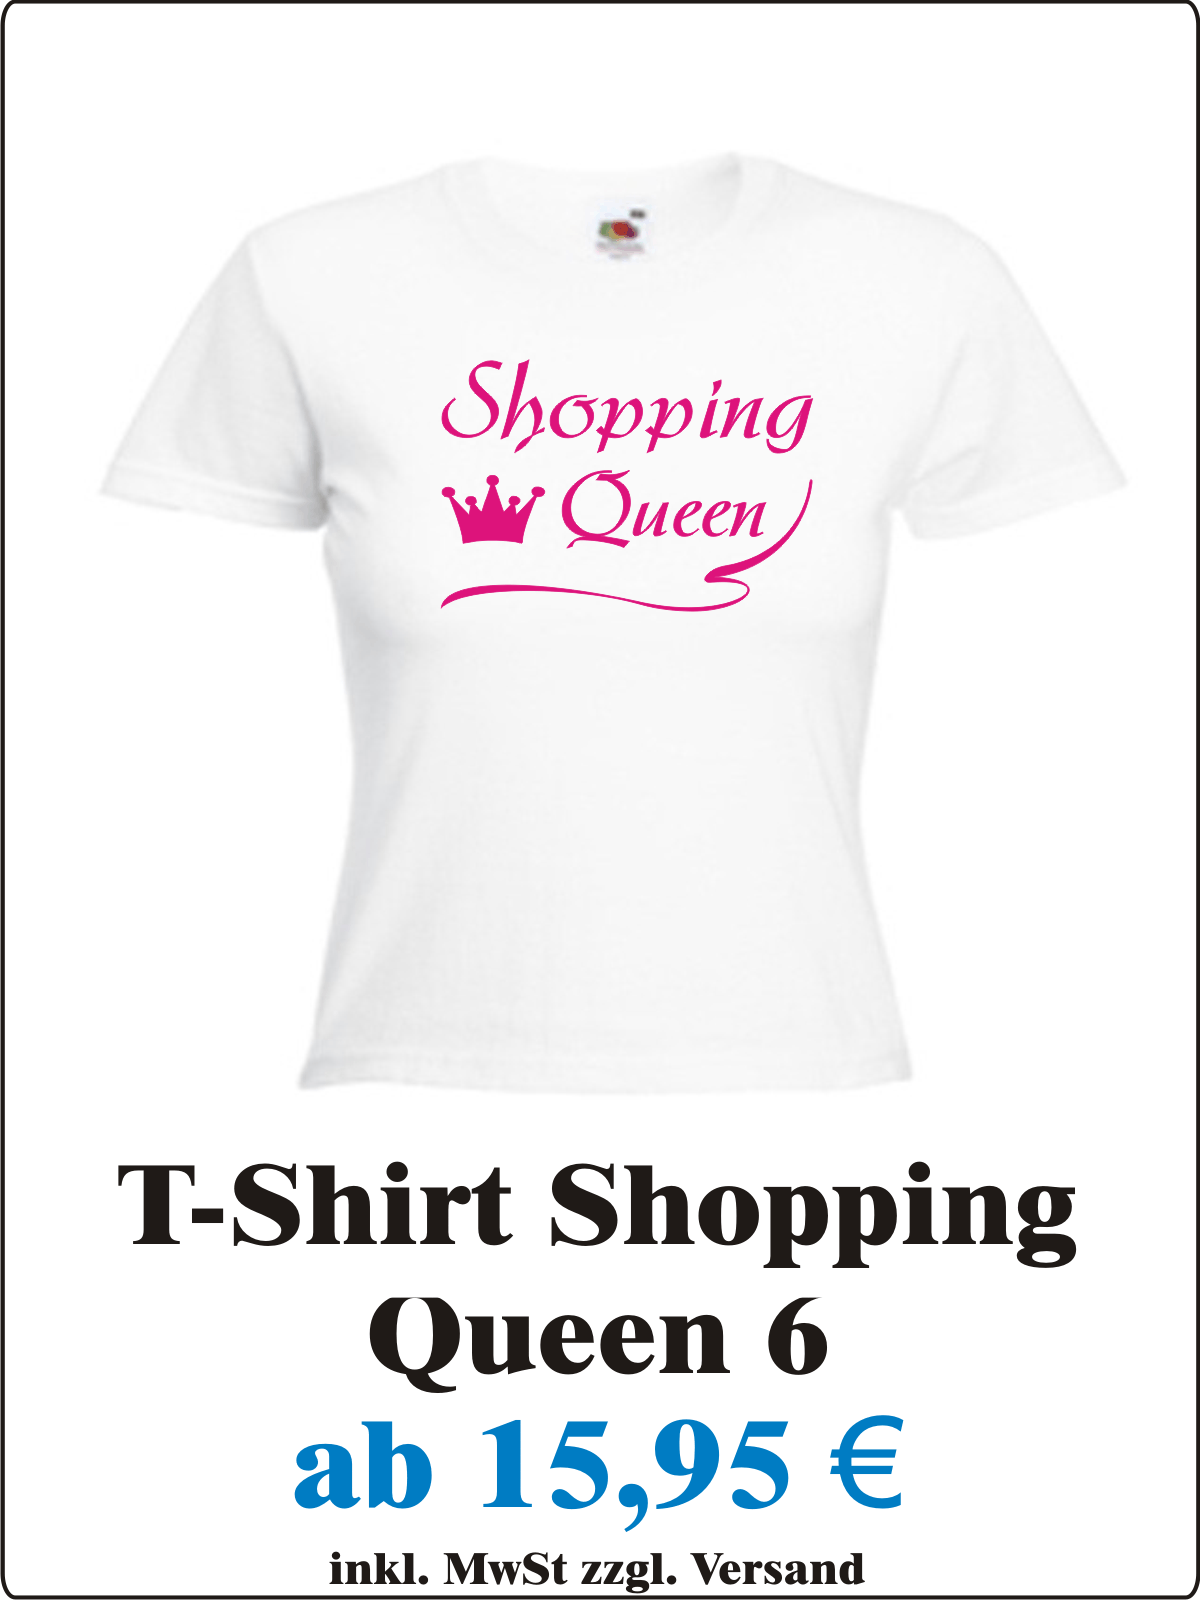 Krone_Sexy_Damen_T-Shirt_mit_Motiv_Shopping_Queen_Frauen_T-Shirt_mit_Spruch_Shopping_Queen__Angebot